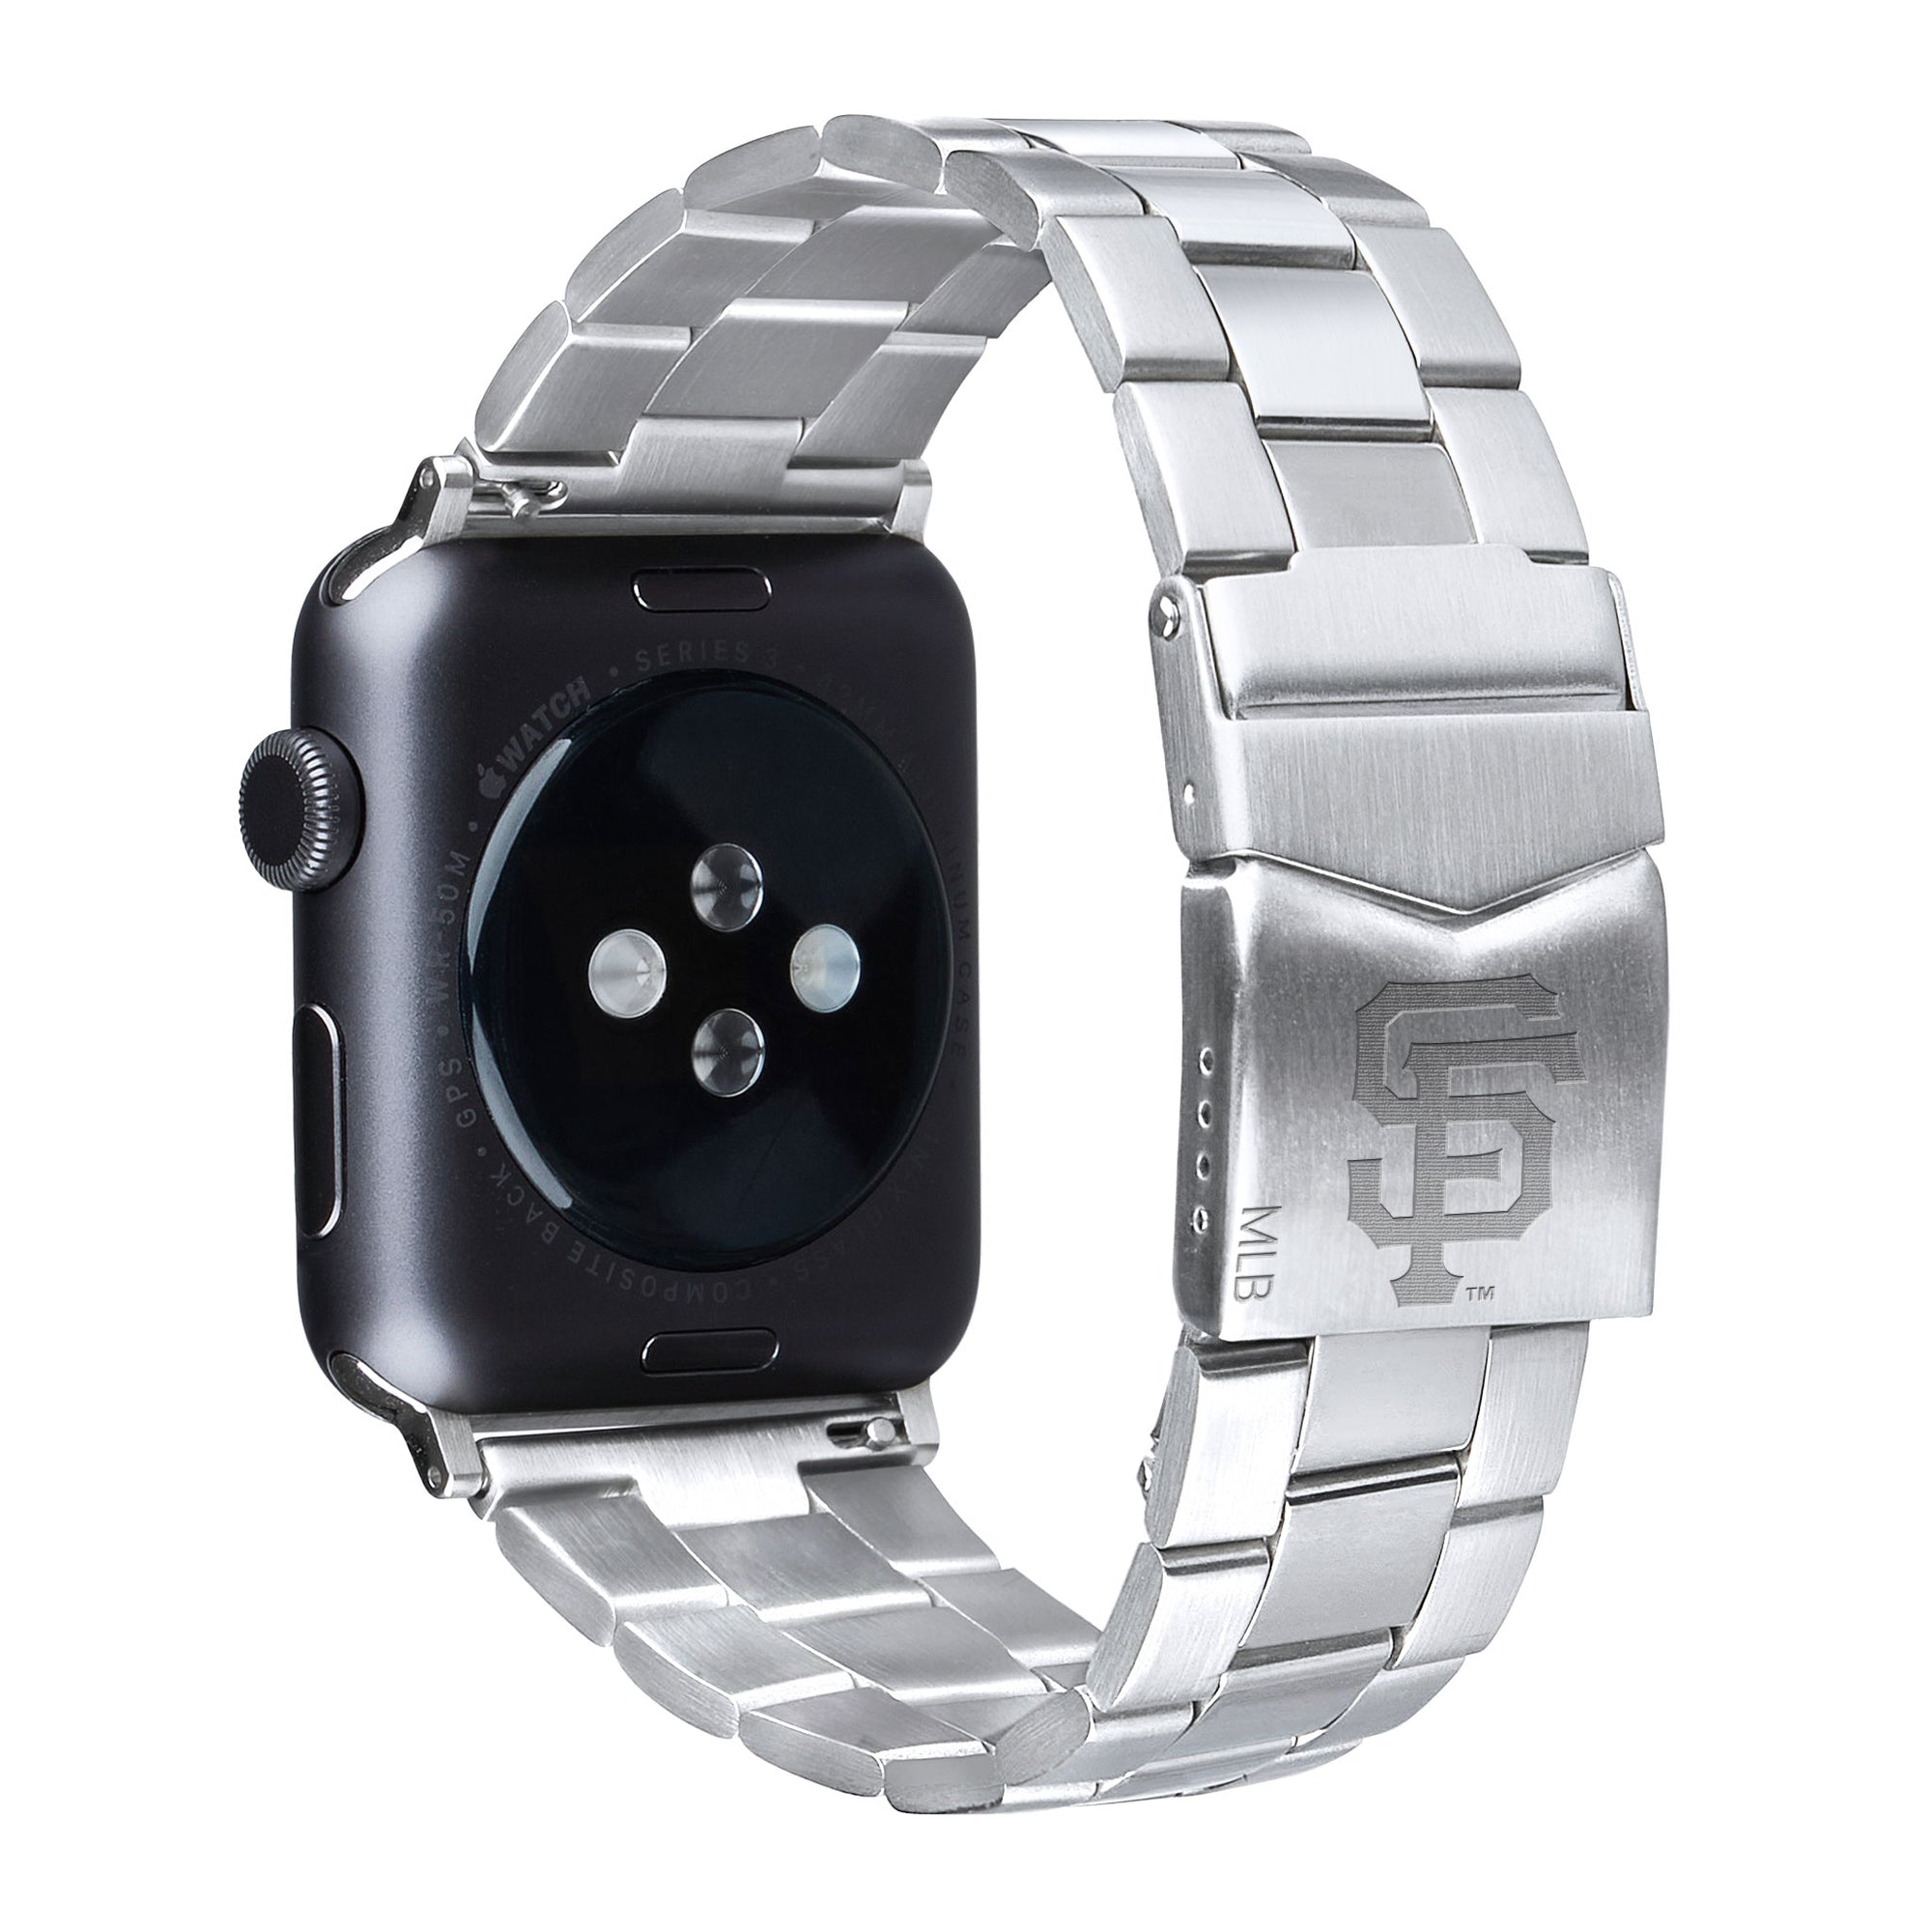 San Francisco Giants Stainless Steel Link Style Apple Watch Band - AffinityBands